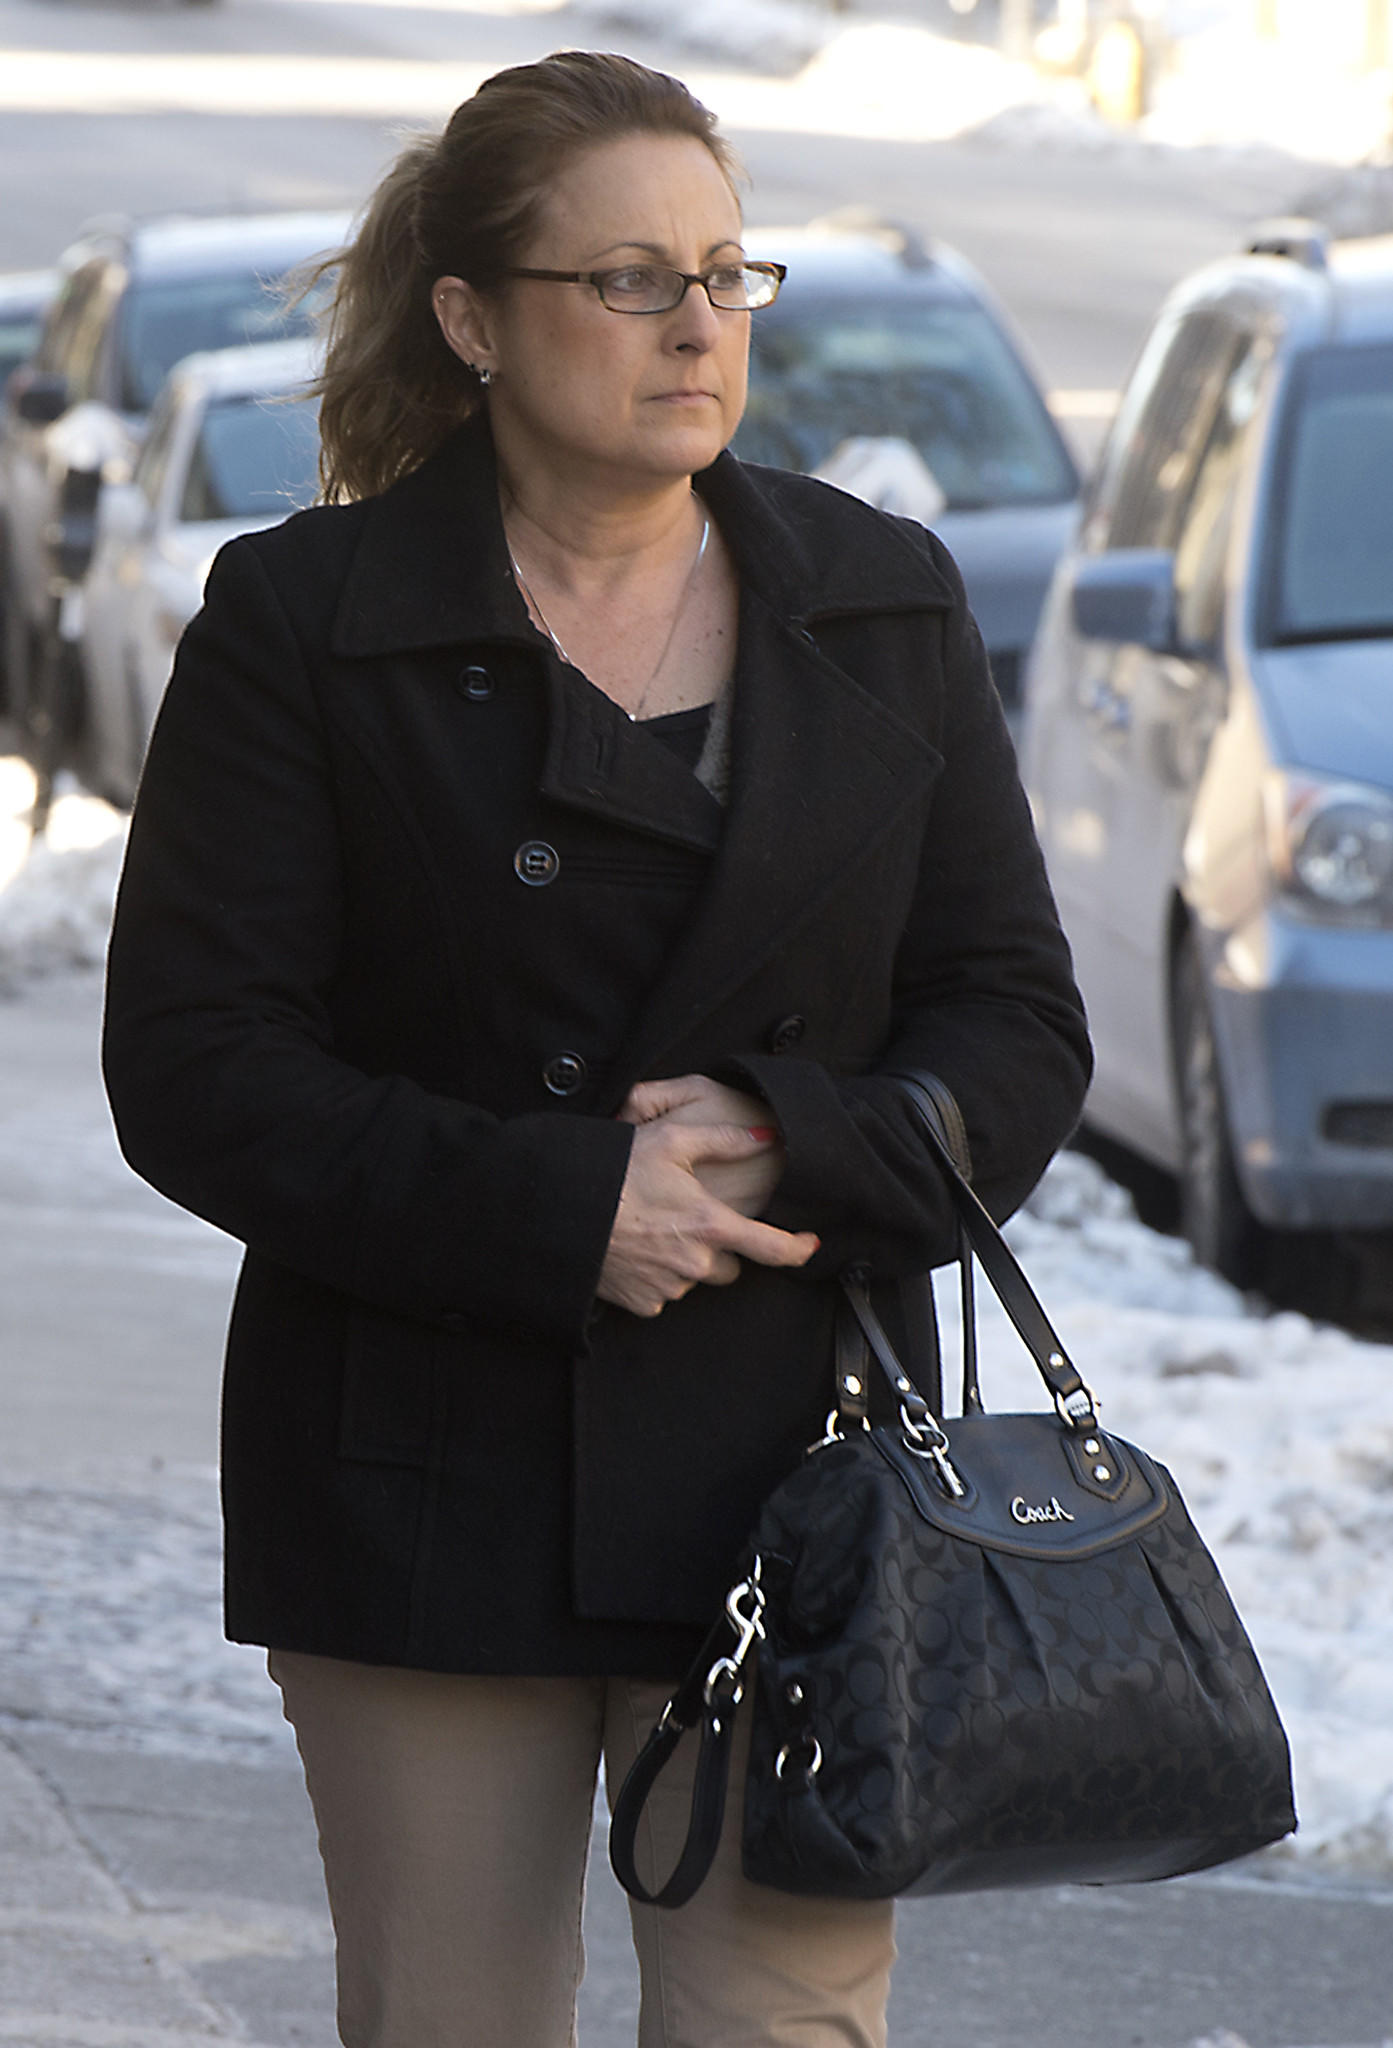 Ann Marie Ballentine, the former treasurer for First Presbyterian Church in Easton, arrives for an arraignment before District Judge Antonia Grifo in Easton on Thursday, January 30, 2014. Ballentine is charged with stealing more than $300,000 from the church.